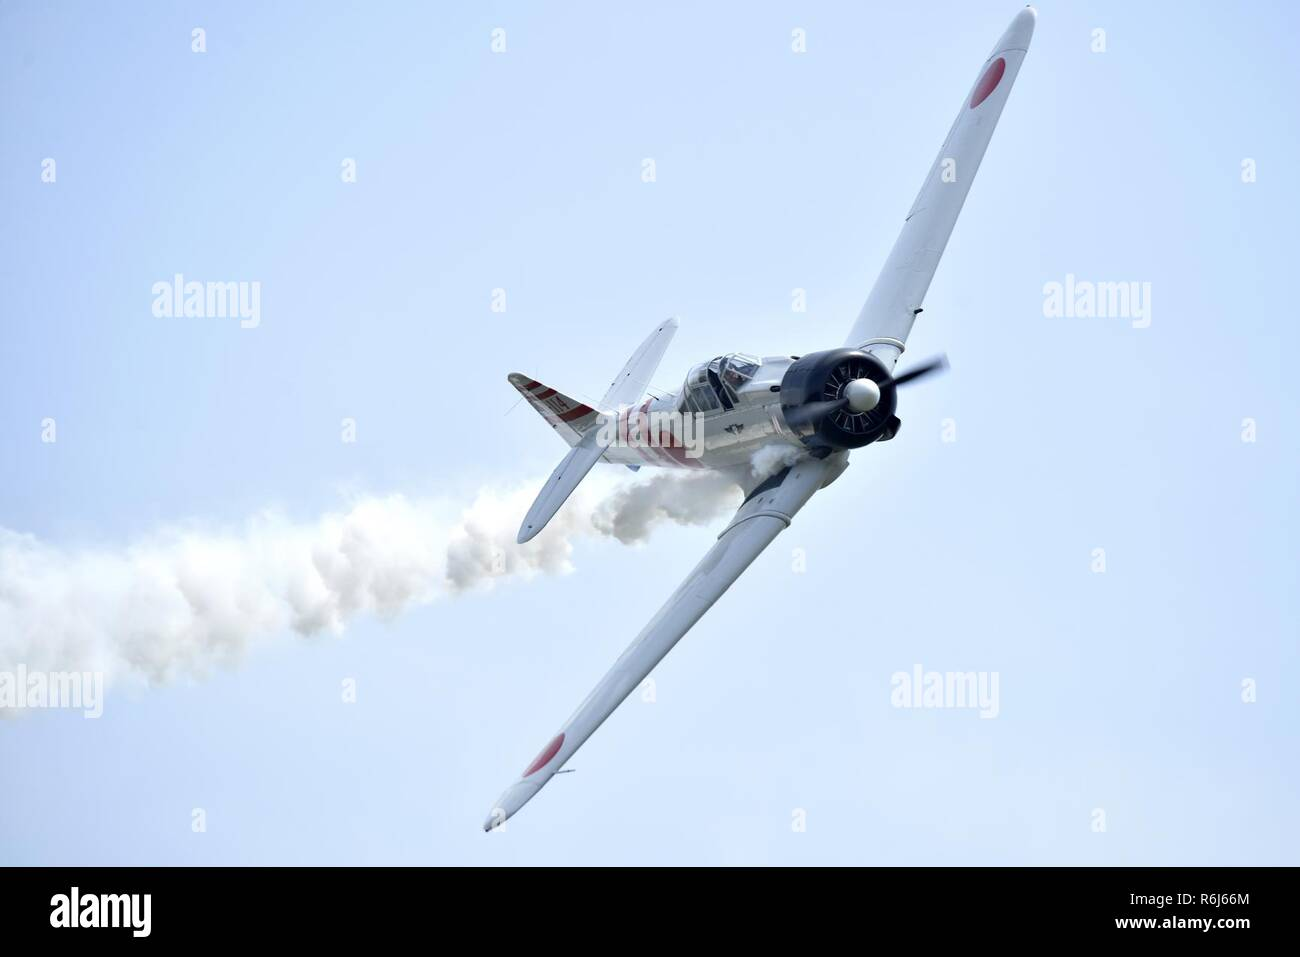 A Japanese Mitsubishi A6M Zero aircraft performs as part of the 'Tora! Tora! Tora!' performance during the Wings Over Wayne Air Show, May 21, 2017, at Seymour Johnson Air Force Base, North Carolina. The installation is open to the public for two, free, daylong air and ground demonstration performances. - Stock Image